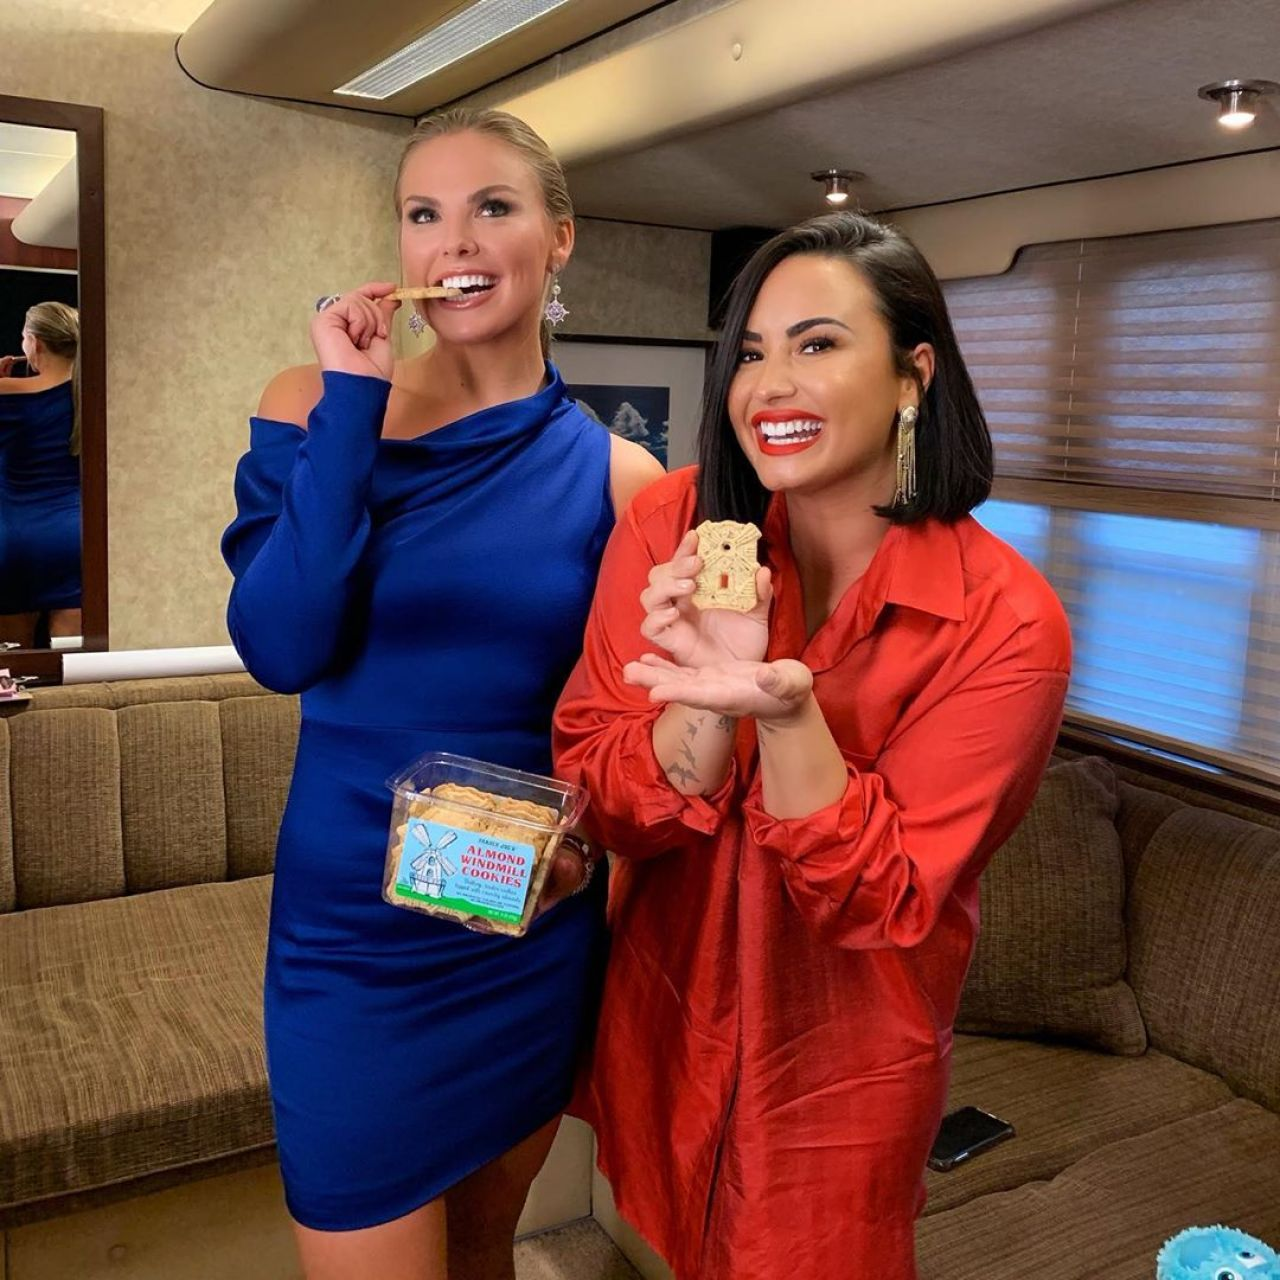 Demi Lovato and Alabama Hannah from The Bachelorette eating cookies and looking sexy :)